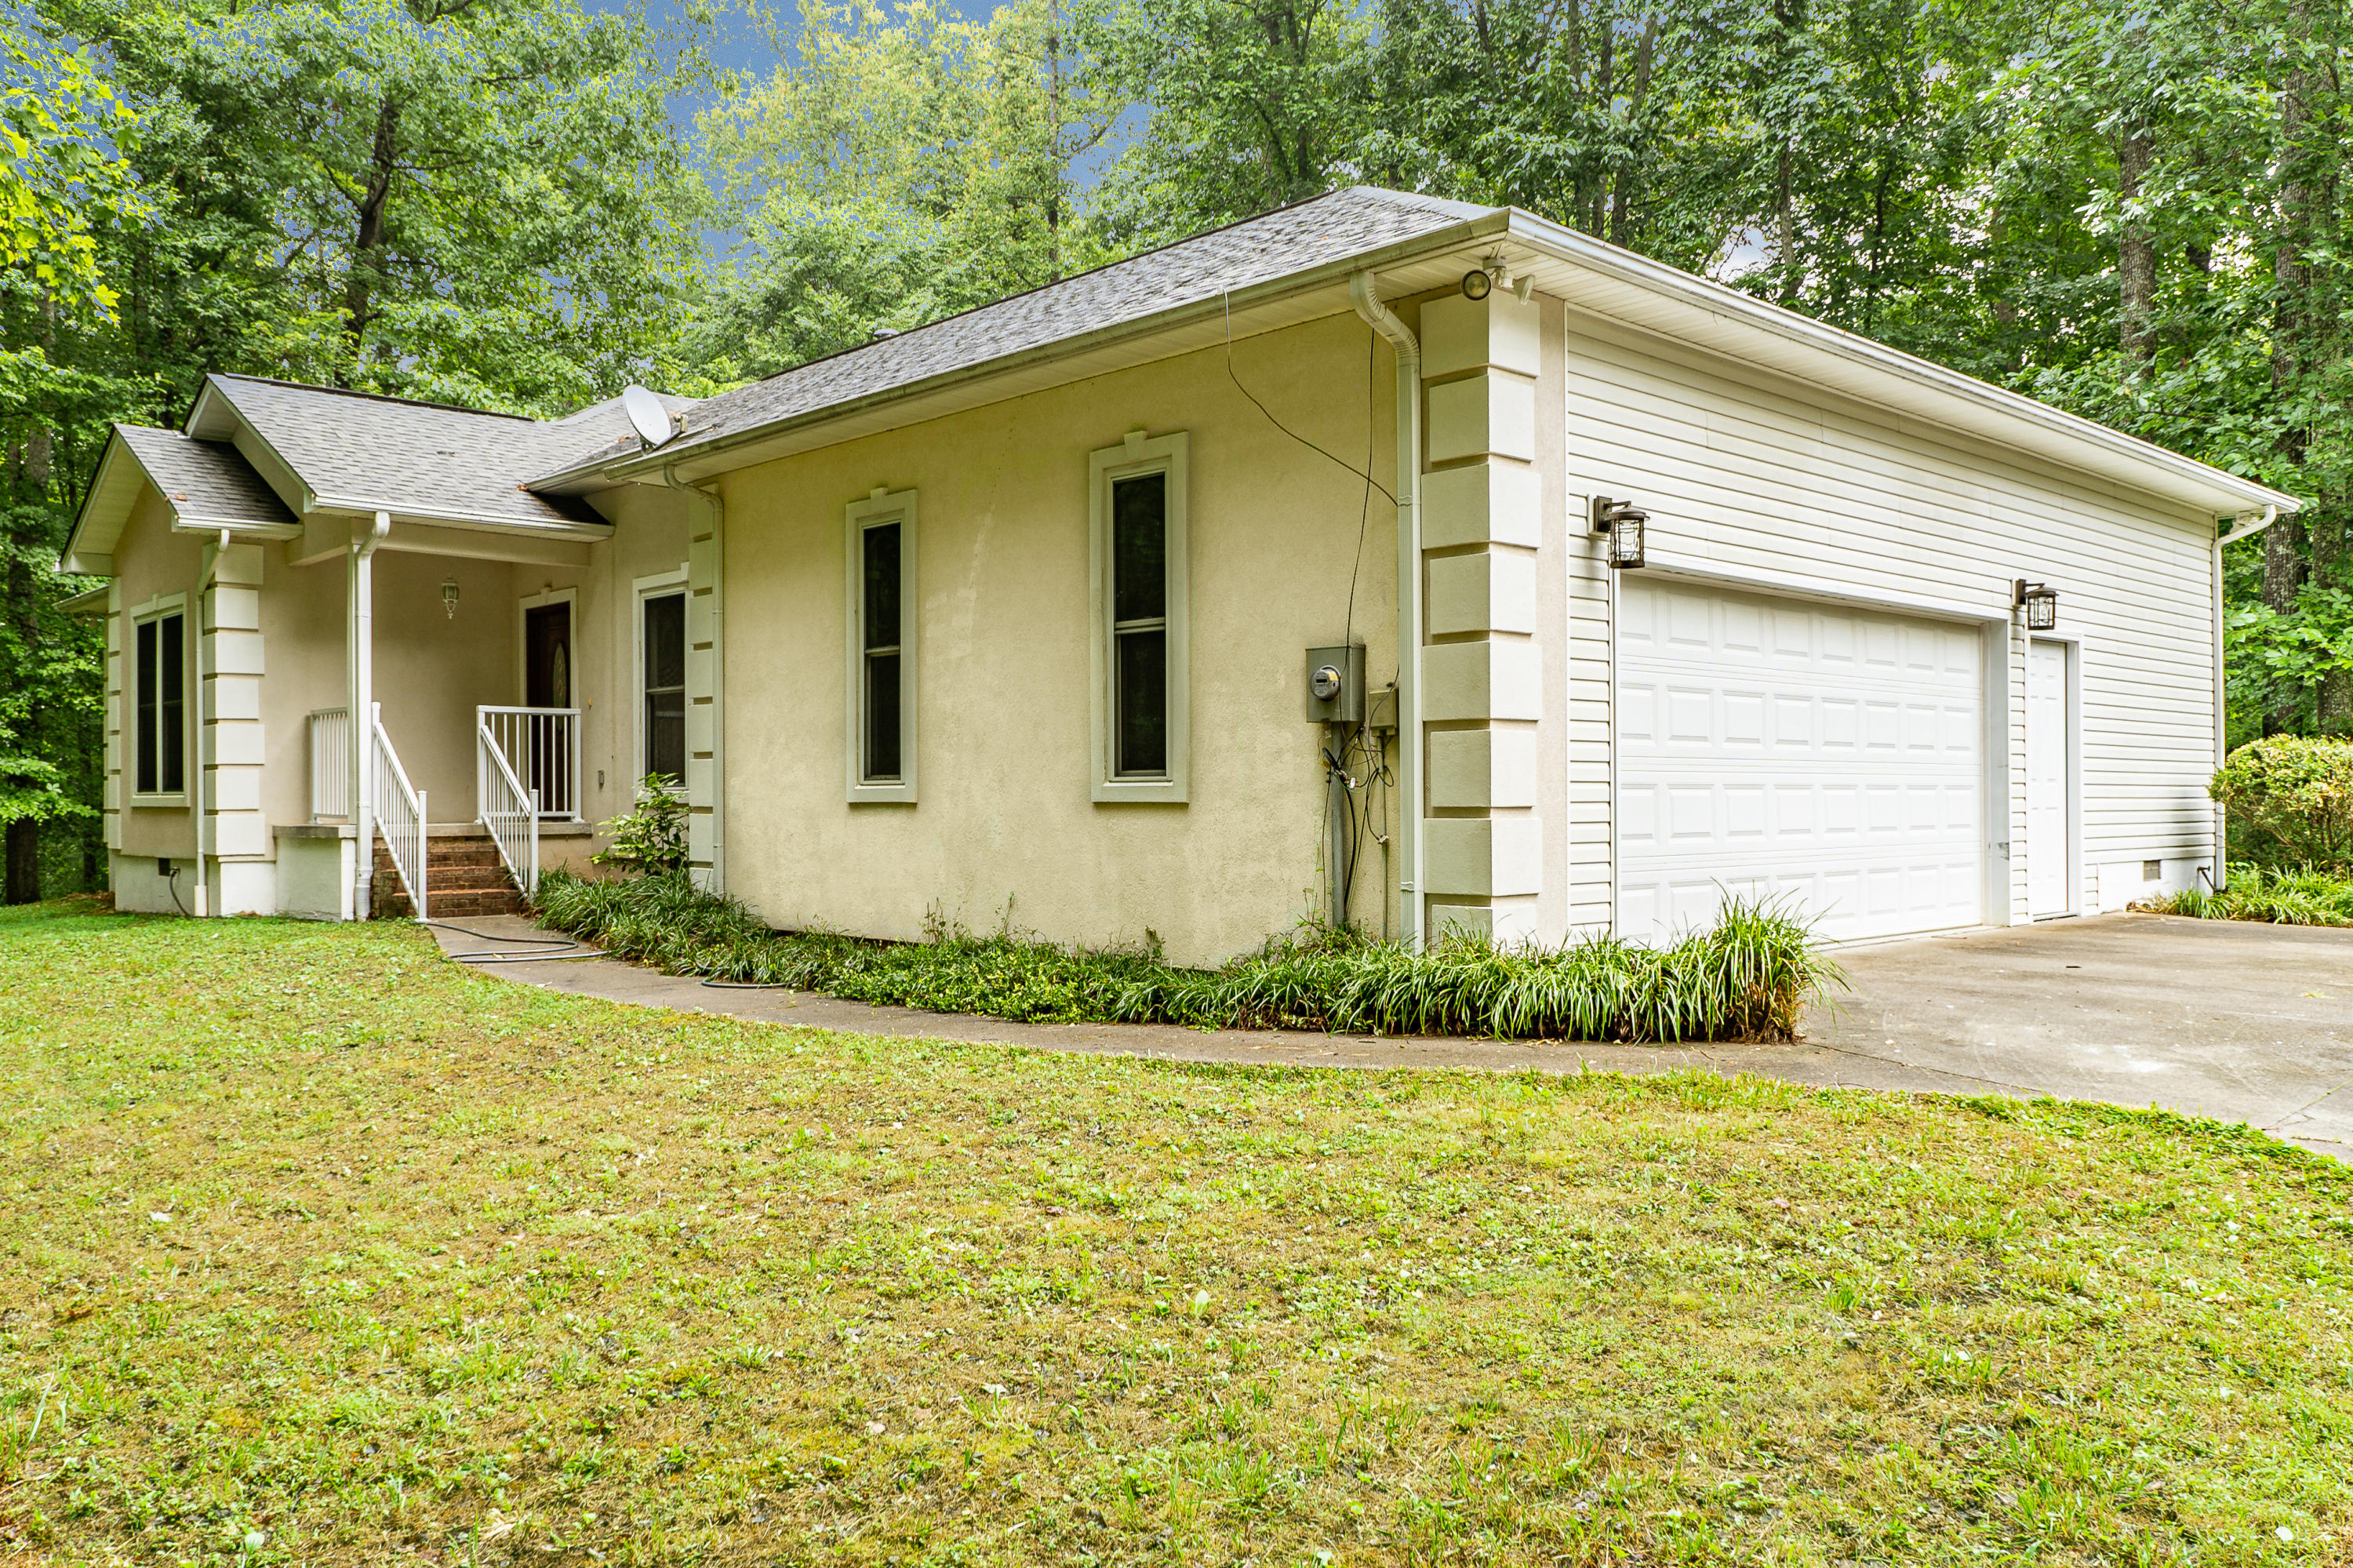 20190607024748308261000000-o Clinton anderson county homes for sale